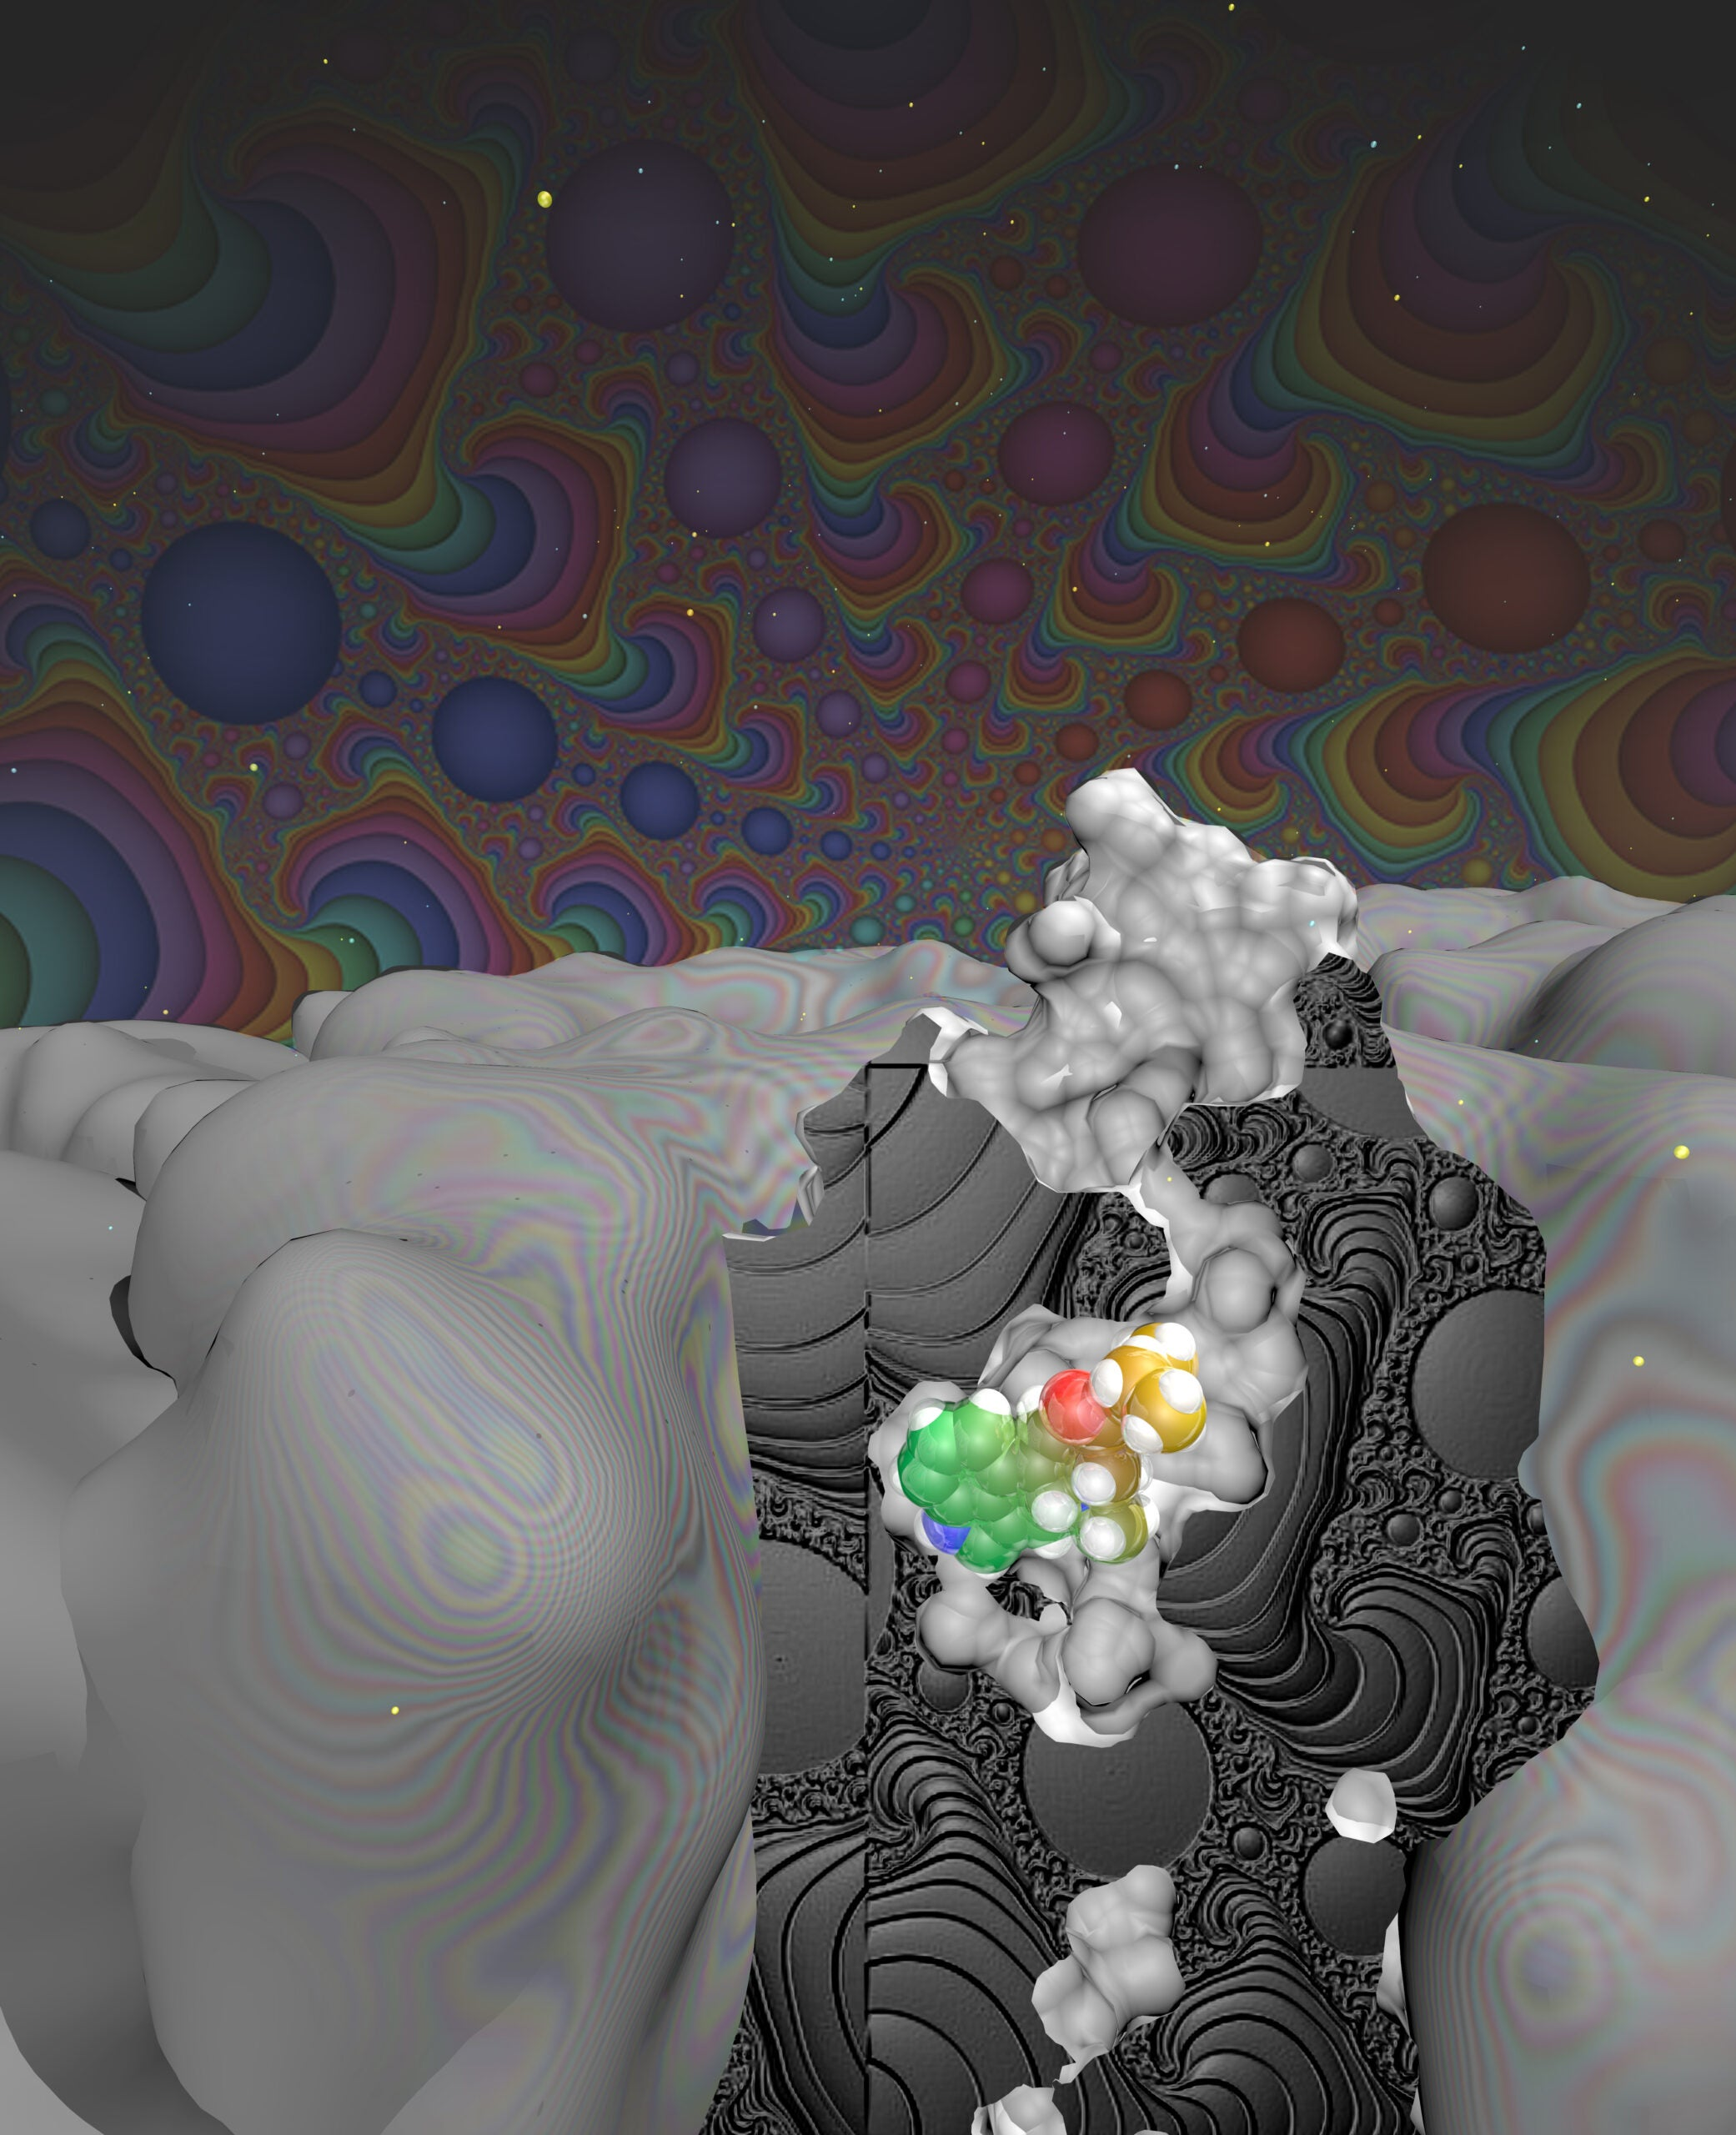 LSD literally gets stuck inside your brain